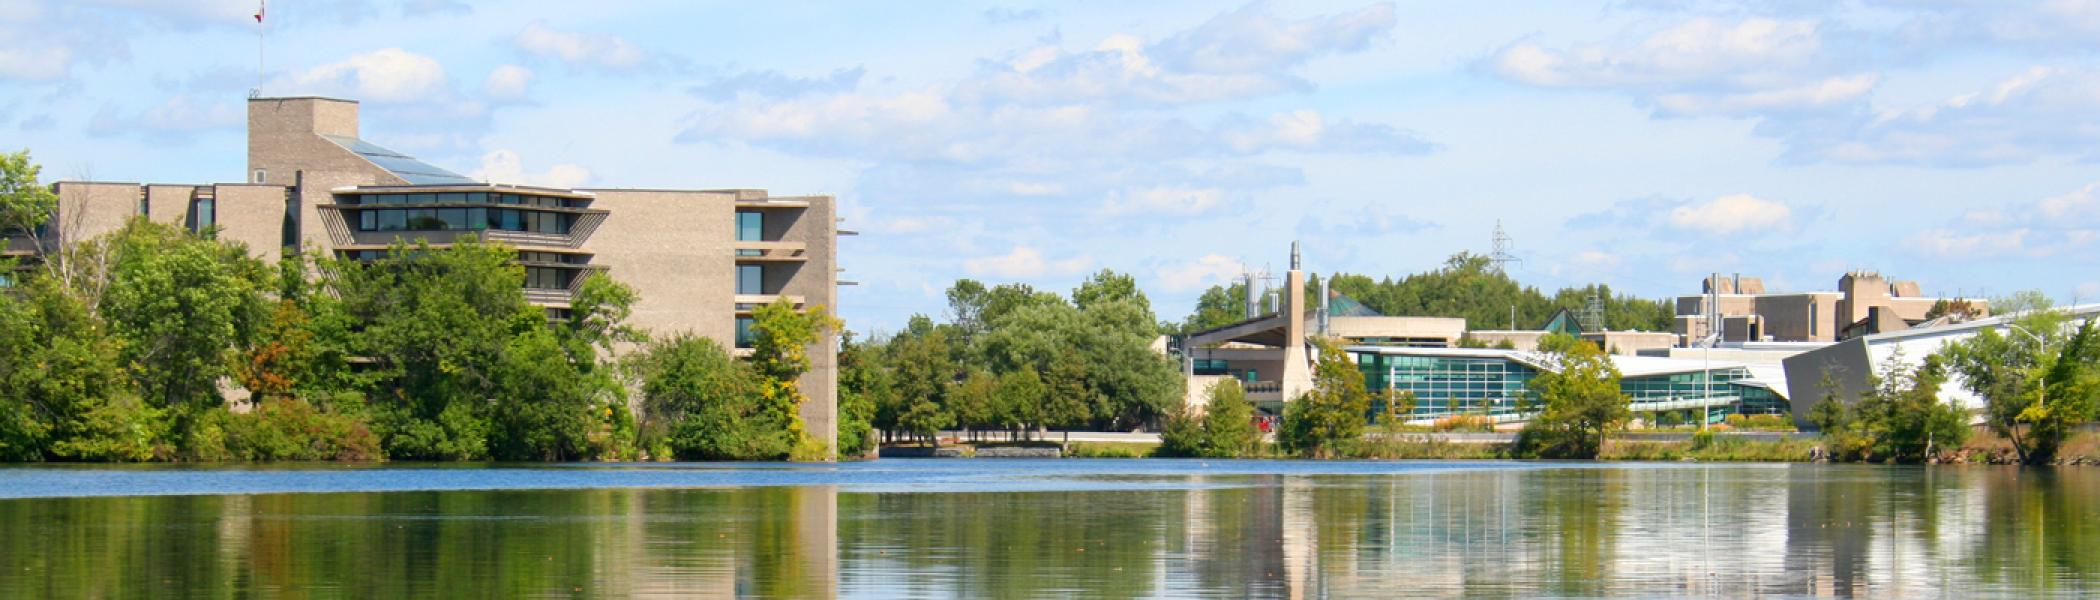 Image of Trent University on Otonabee River